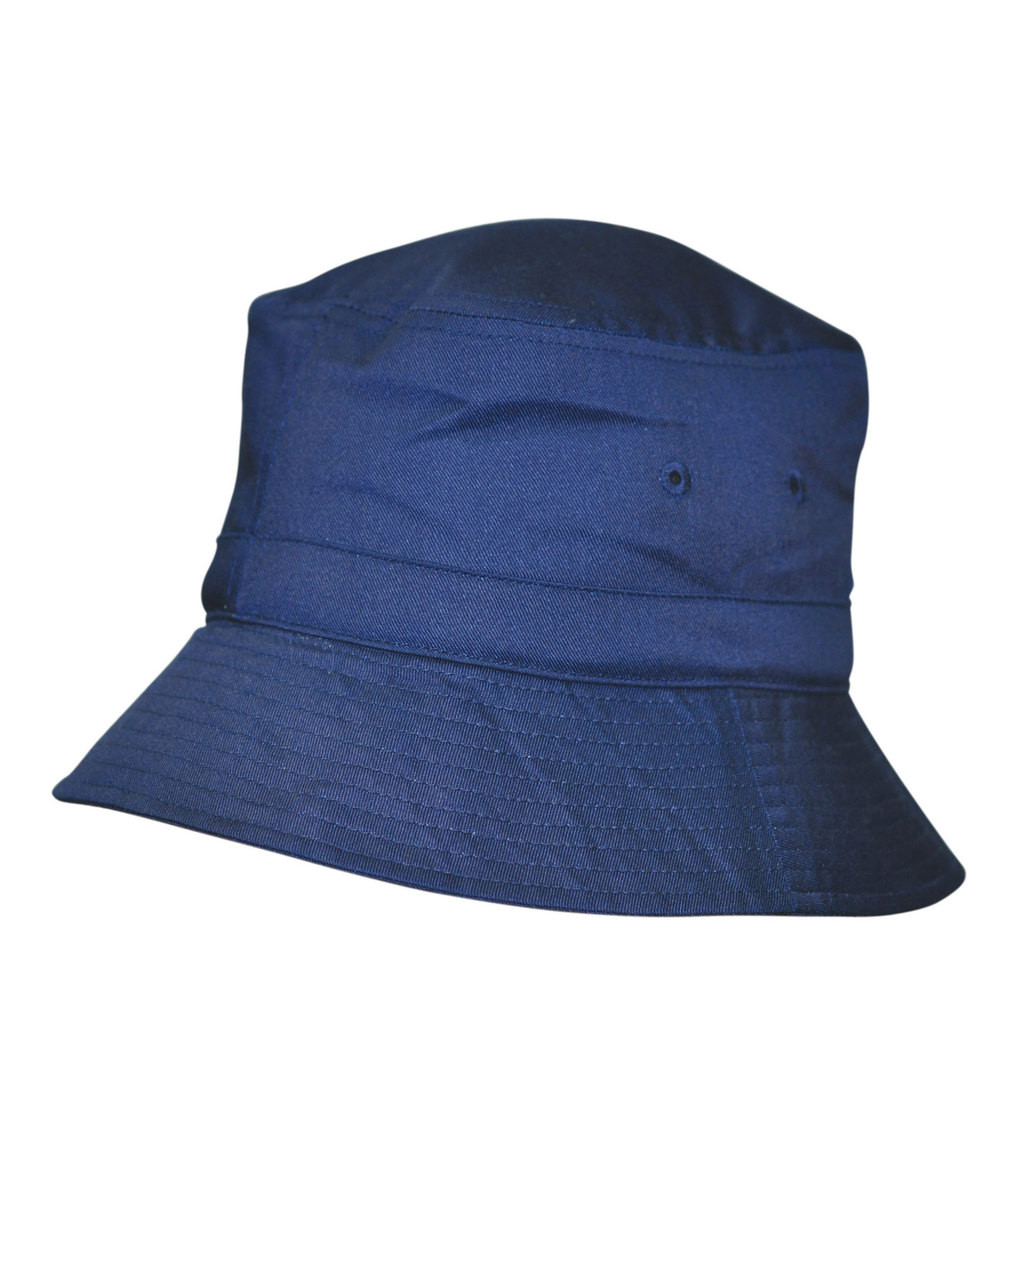 a8d49c63416 ... Bucket Hat With Toggle. Hover over image to zoom